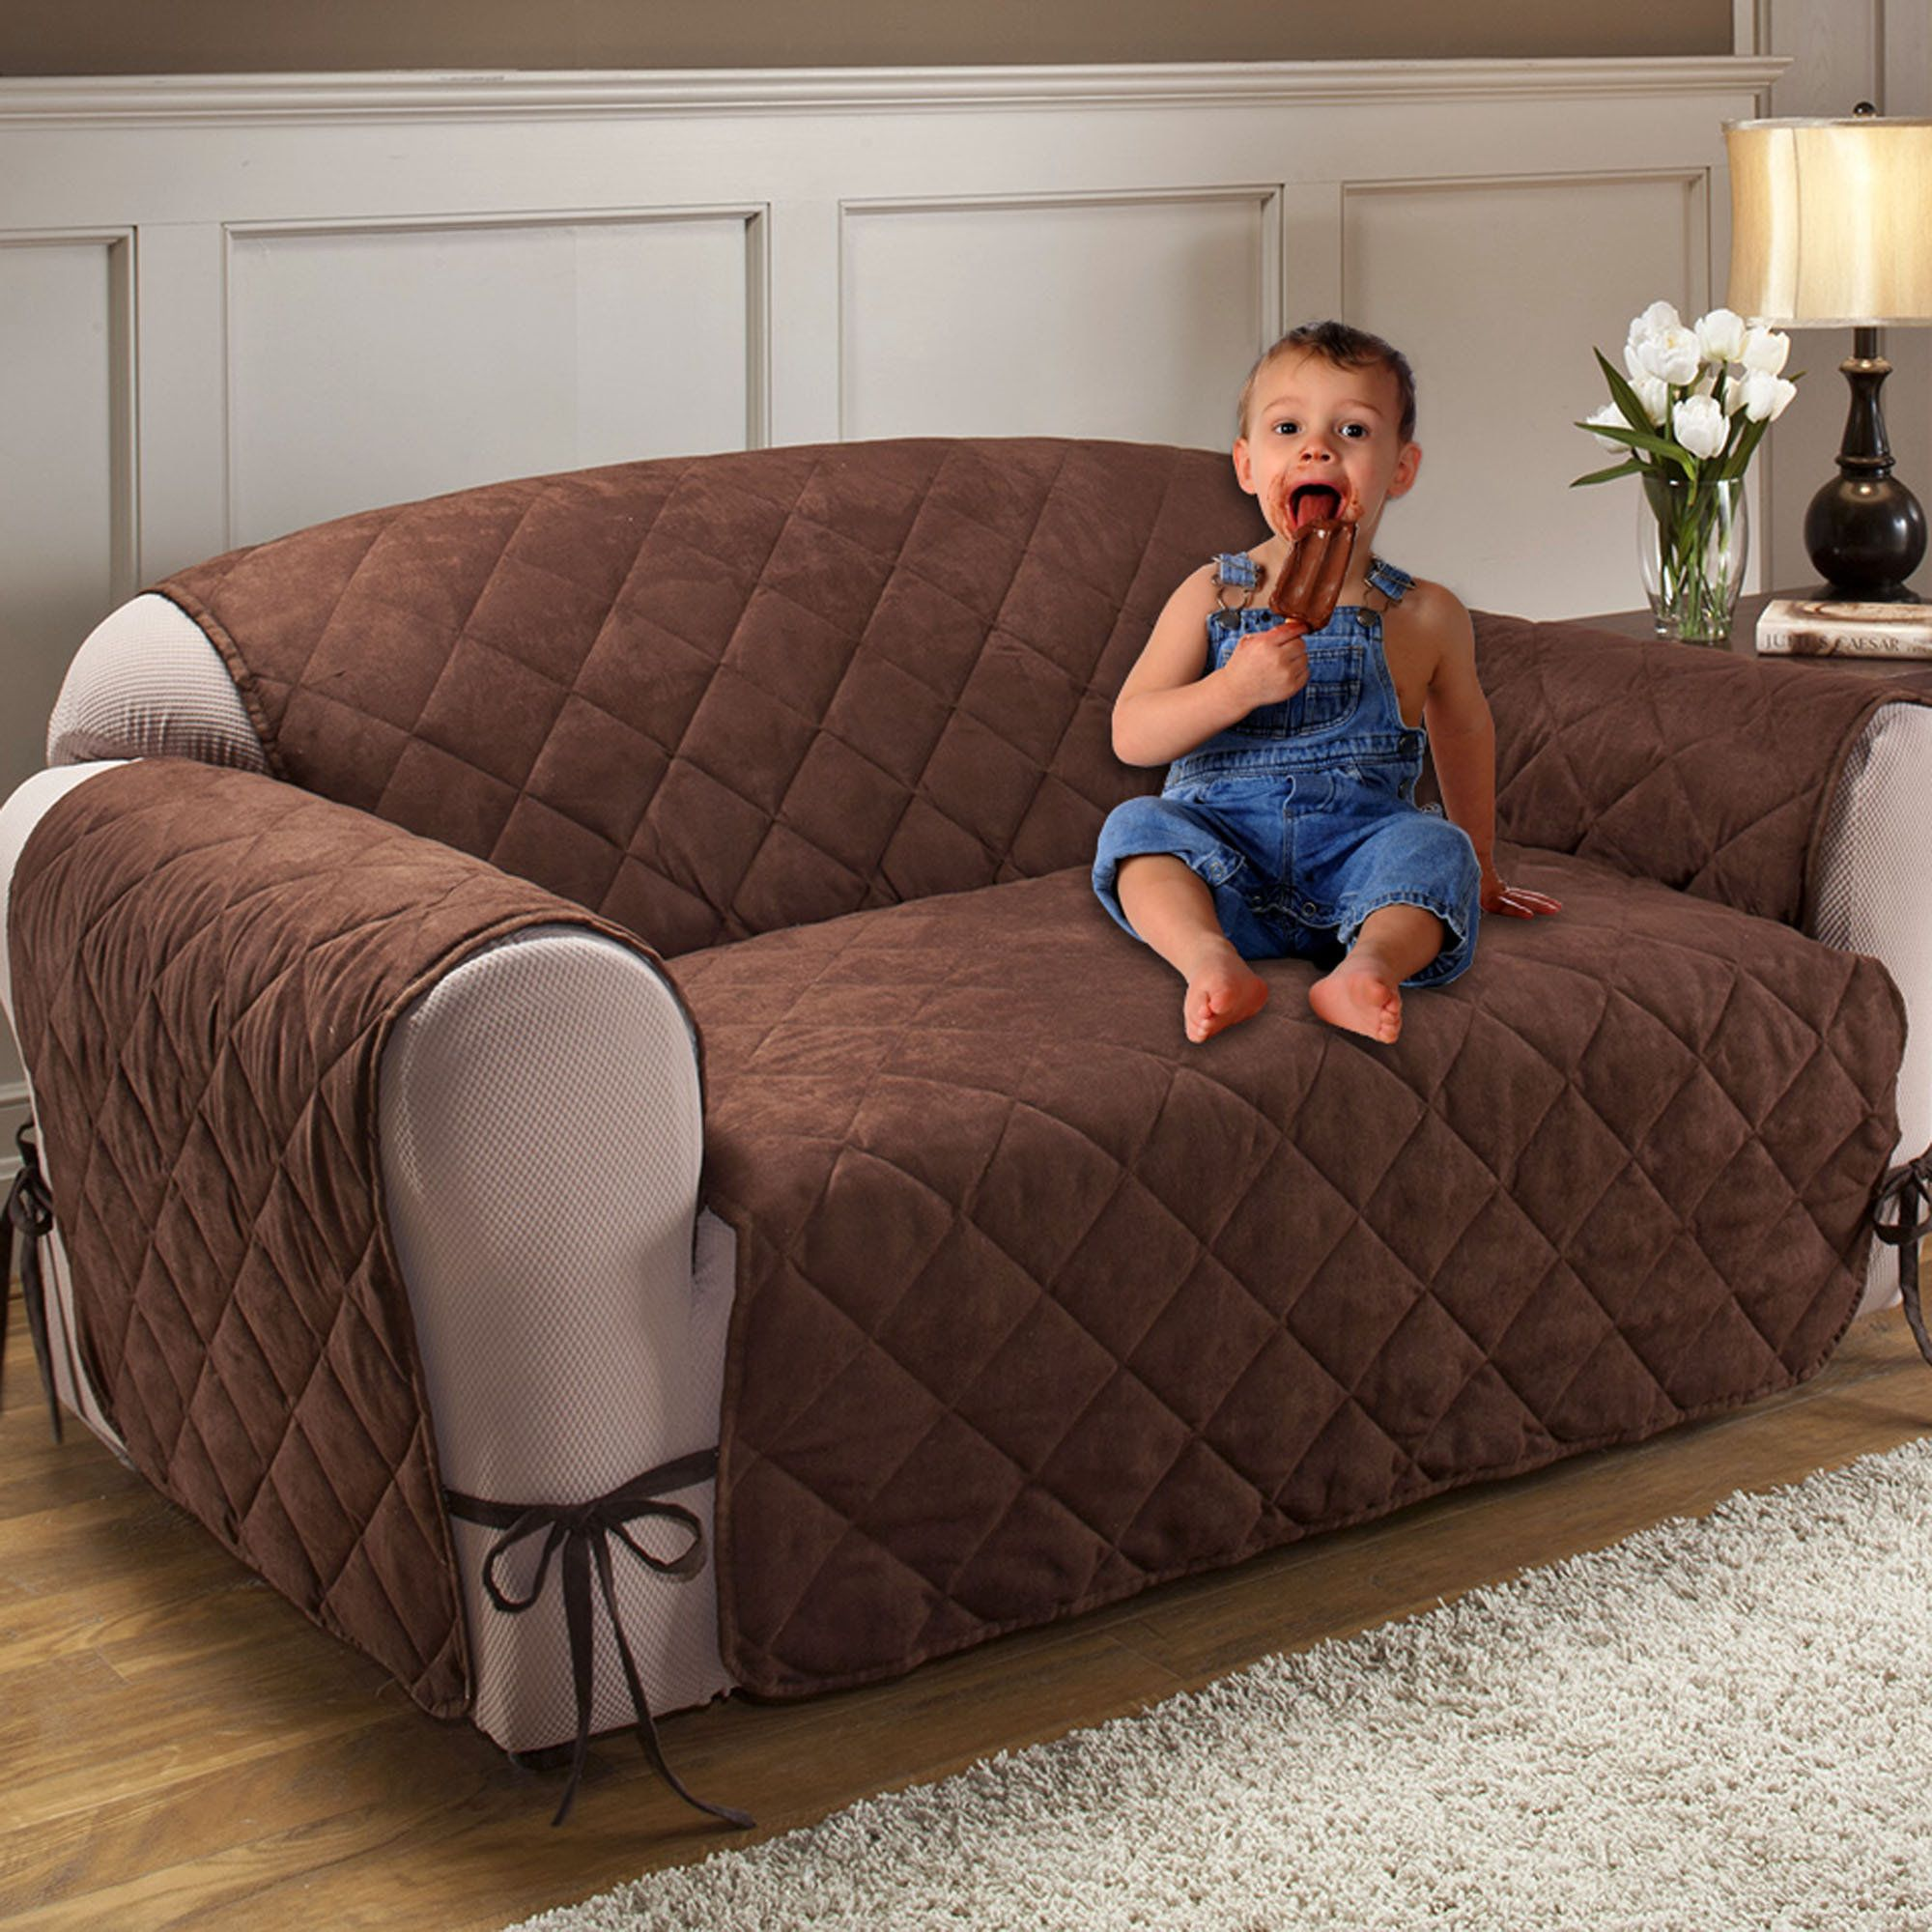 Sofa Slipcover Patterns Free Michalsky Madrid Preis Quilted Microfiber Total Furniture Cover With Ties